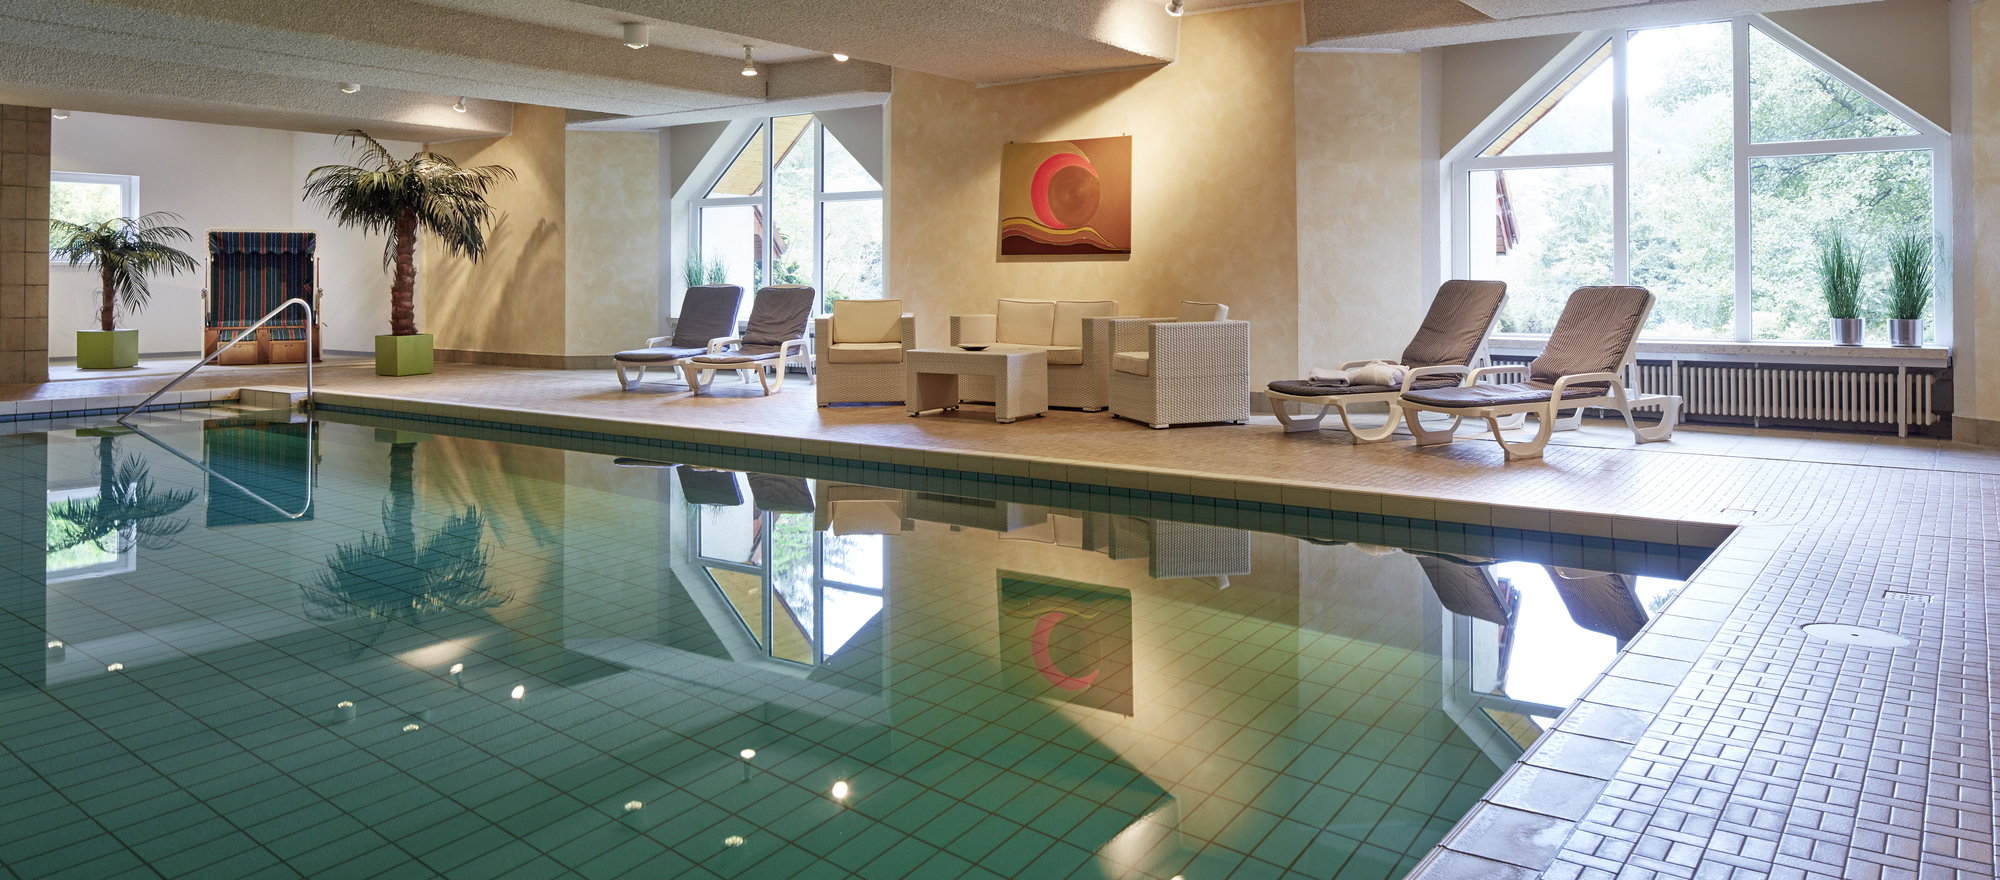 Swimming pool at the Ringhotel Waldhotel Bärenstein in Horn-Bad Meinberg, 4-Sterne Hotel in the Teutoburg Forest